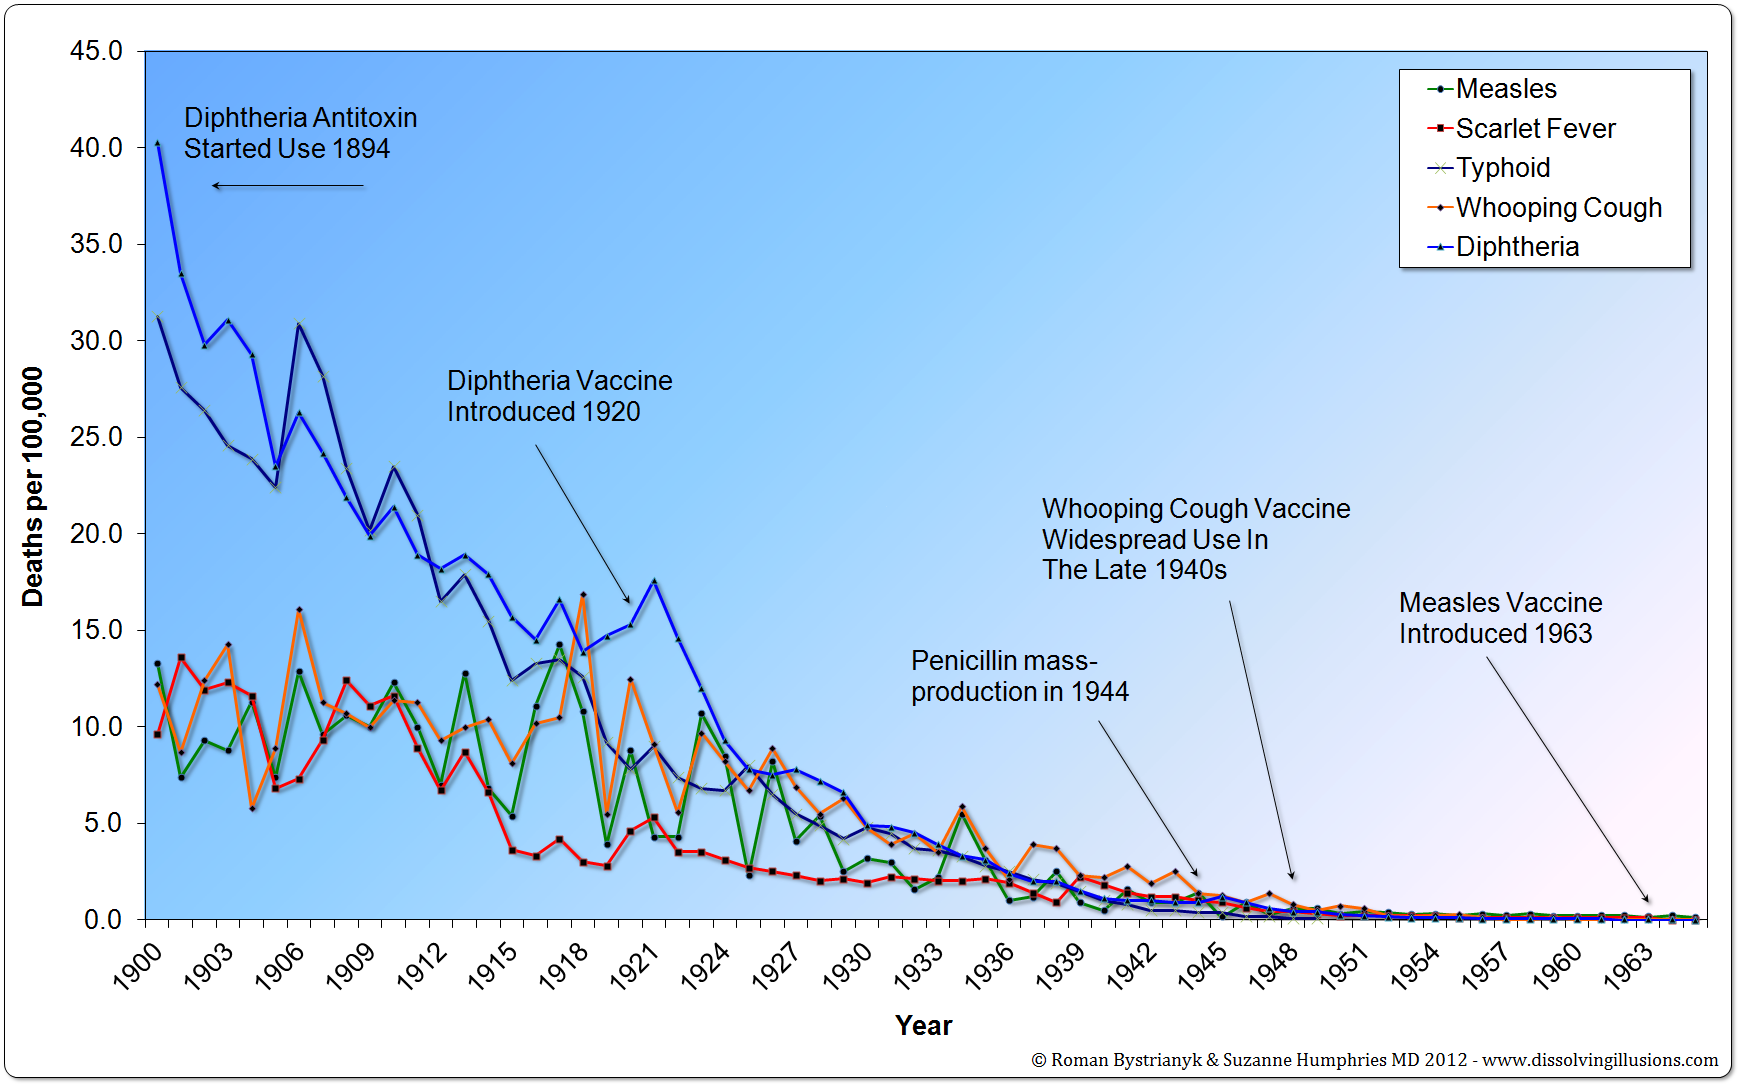 measles-scarletfever-typhoid-whooingcough-diphtheria